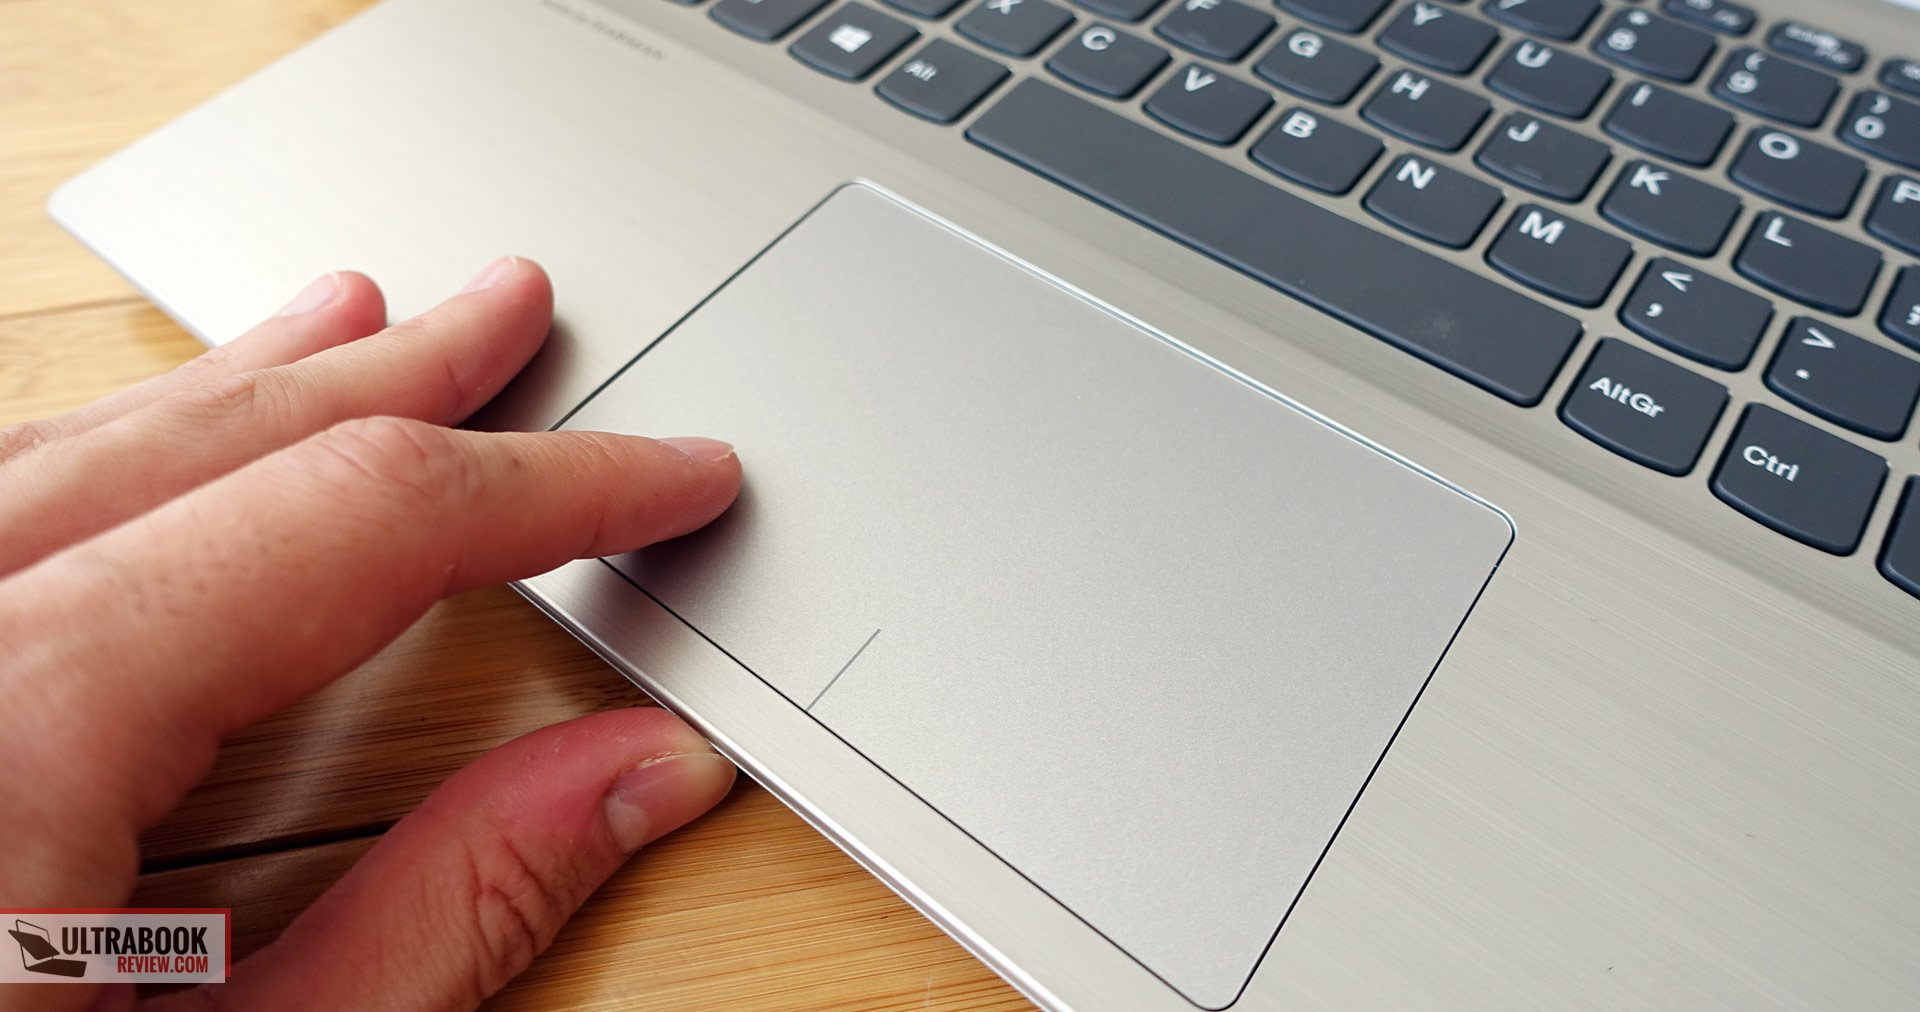 Lenovo IdeaPad 320S review - affordable and compact 14-inch notebook